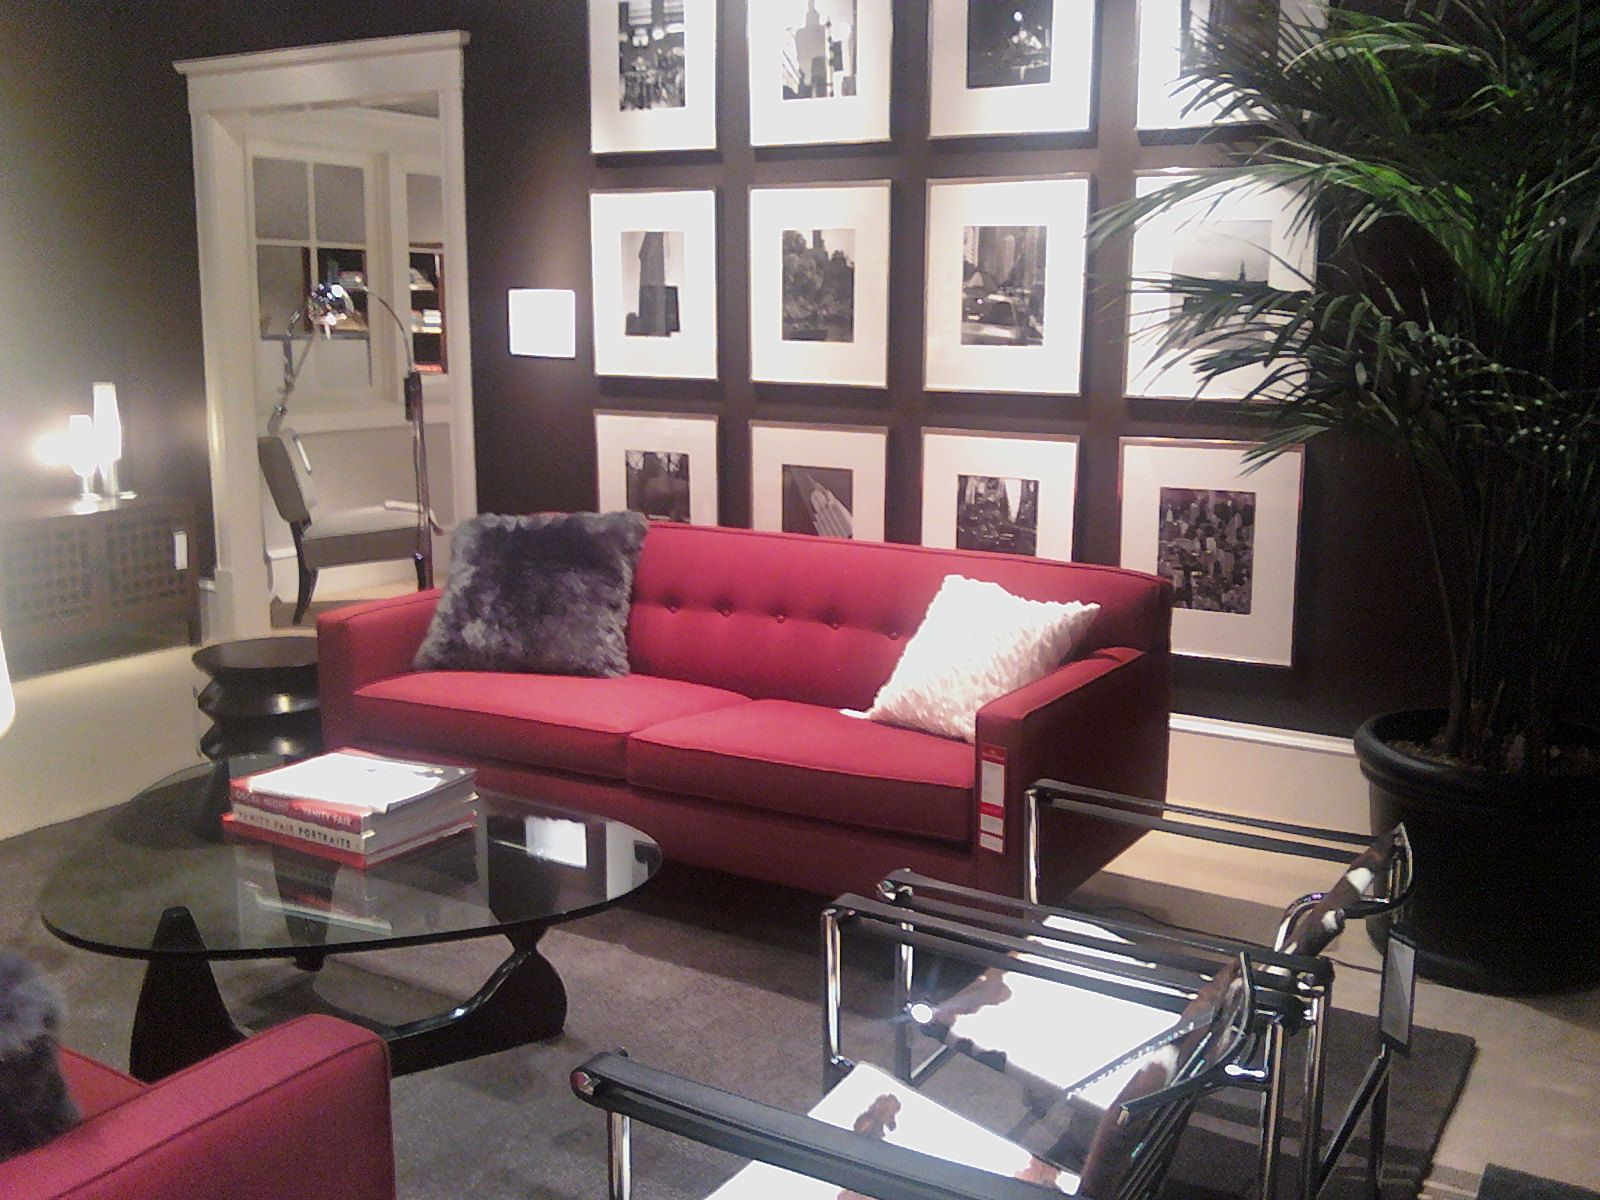 Dorm rooms at stanford room and board red sofas  living rooms stanford  pinterest  board